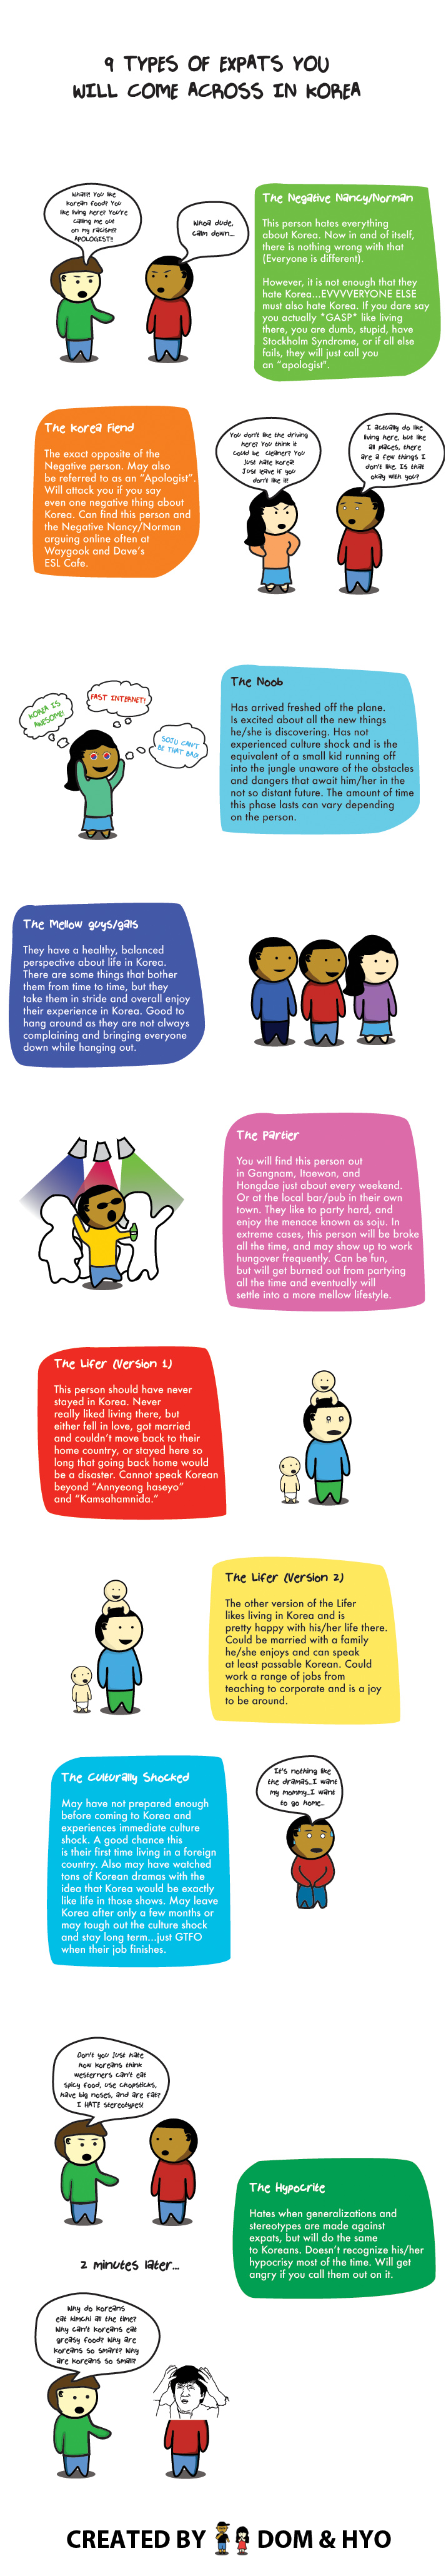 Different Types of Expats you will encounter in Korea